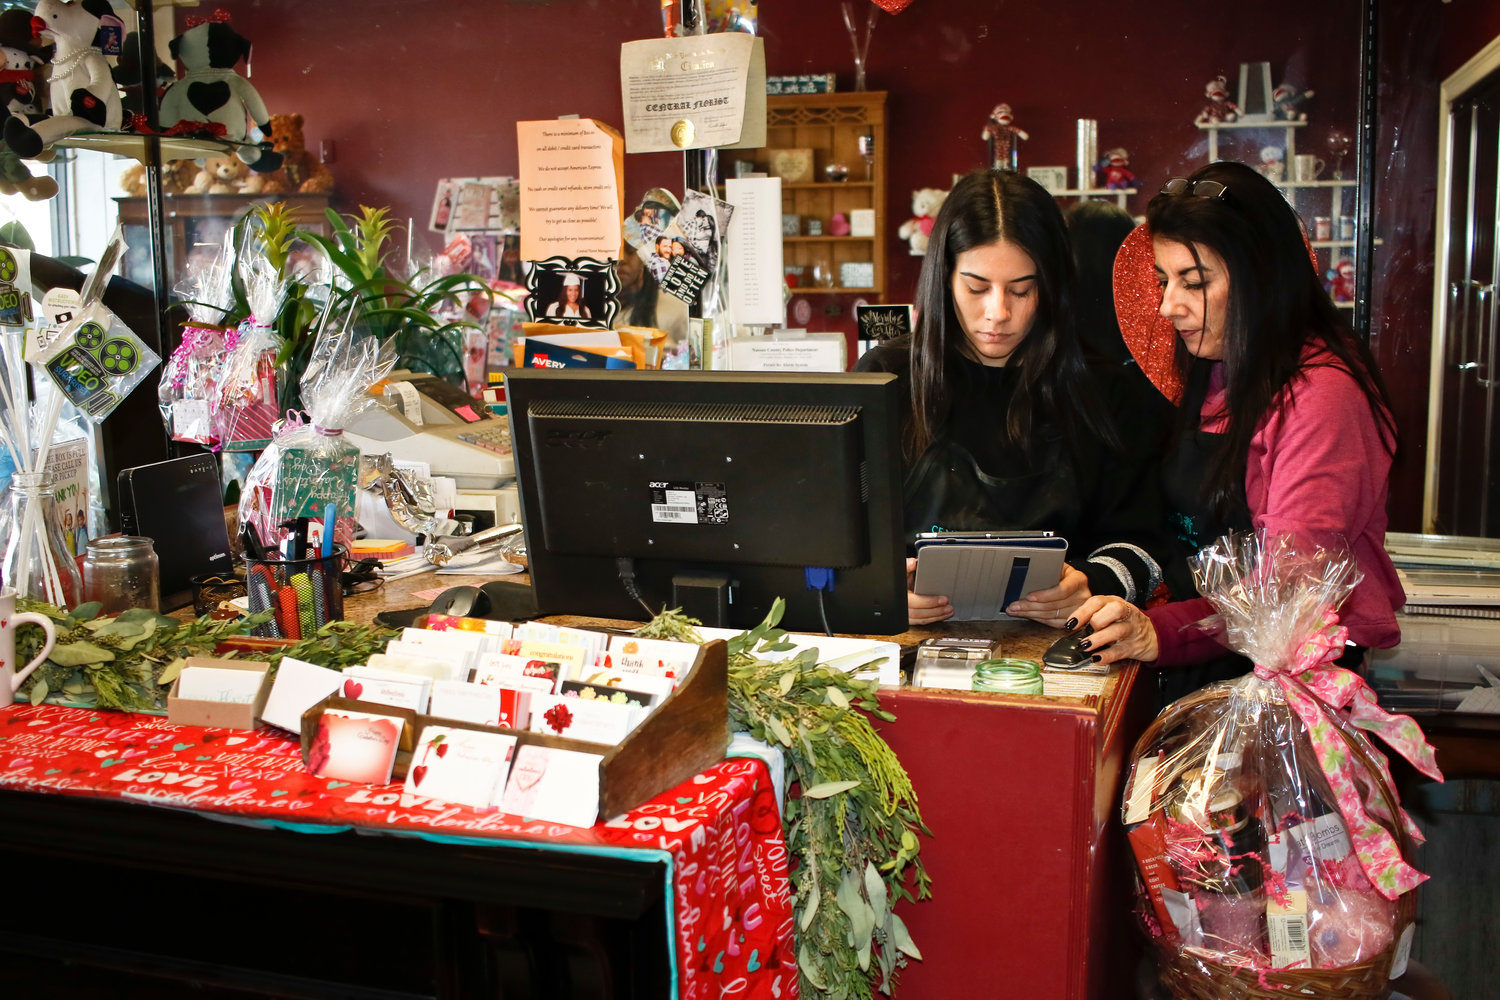 Victoria Capabli and her mother Lisa Elfante checking digital orders. They encouraged customers to visit their website at centralflorist.com to make their purchases.